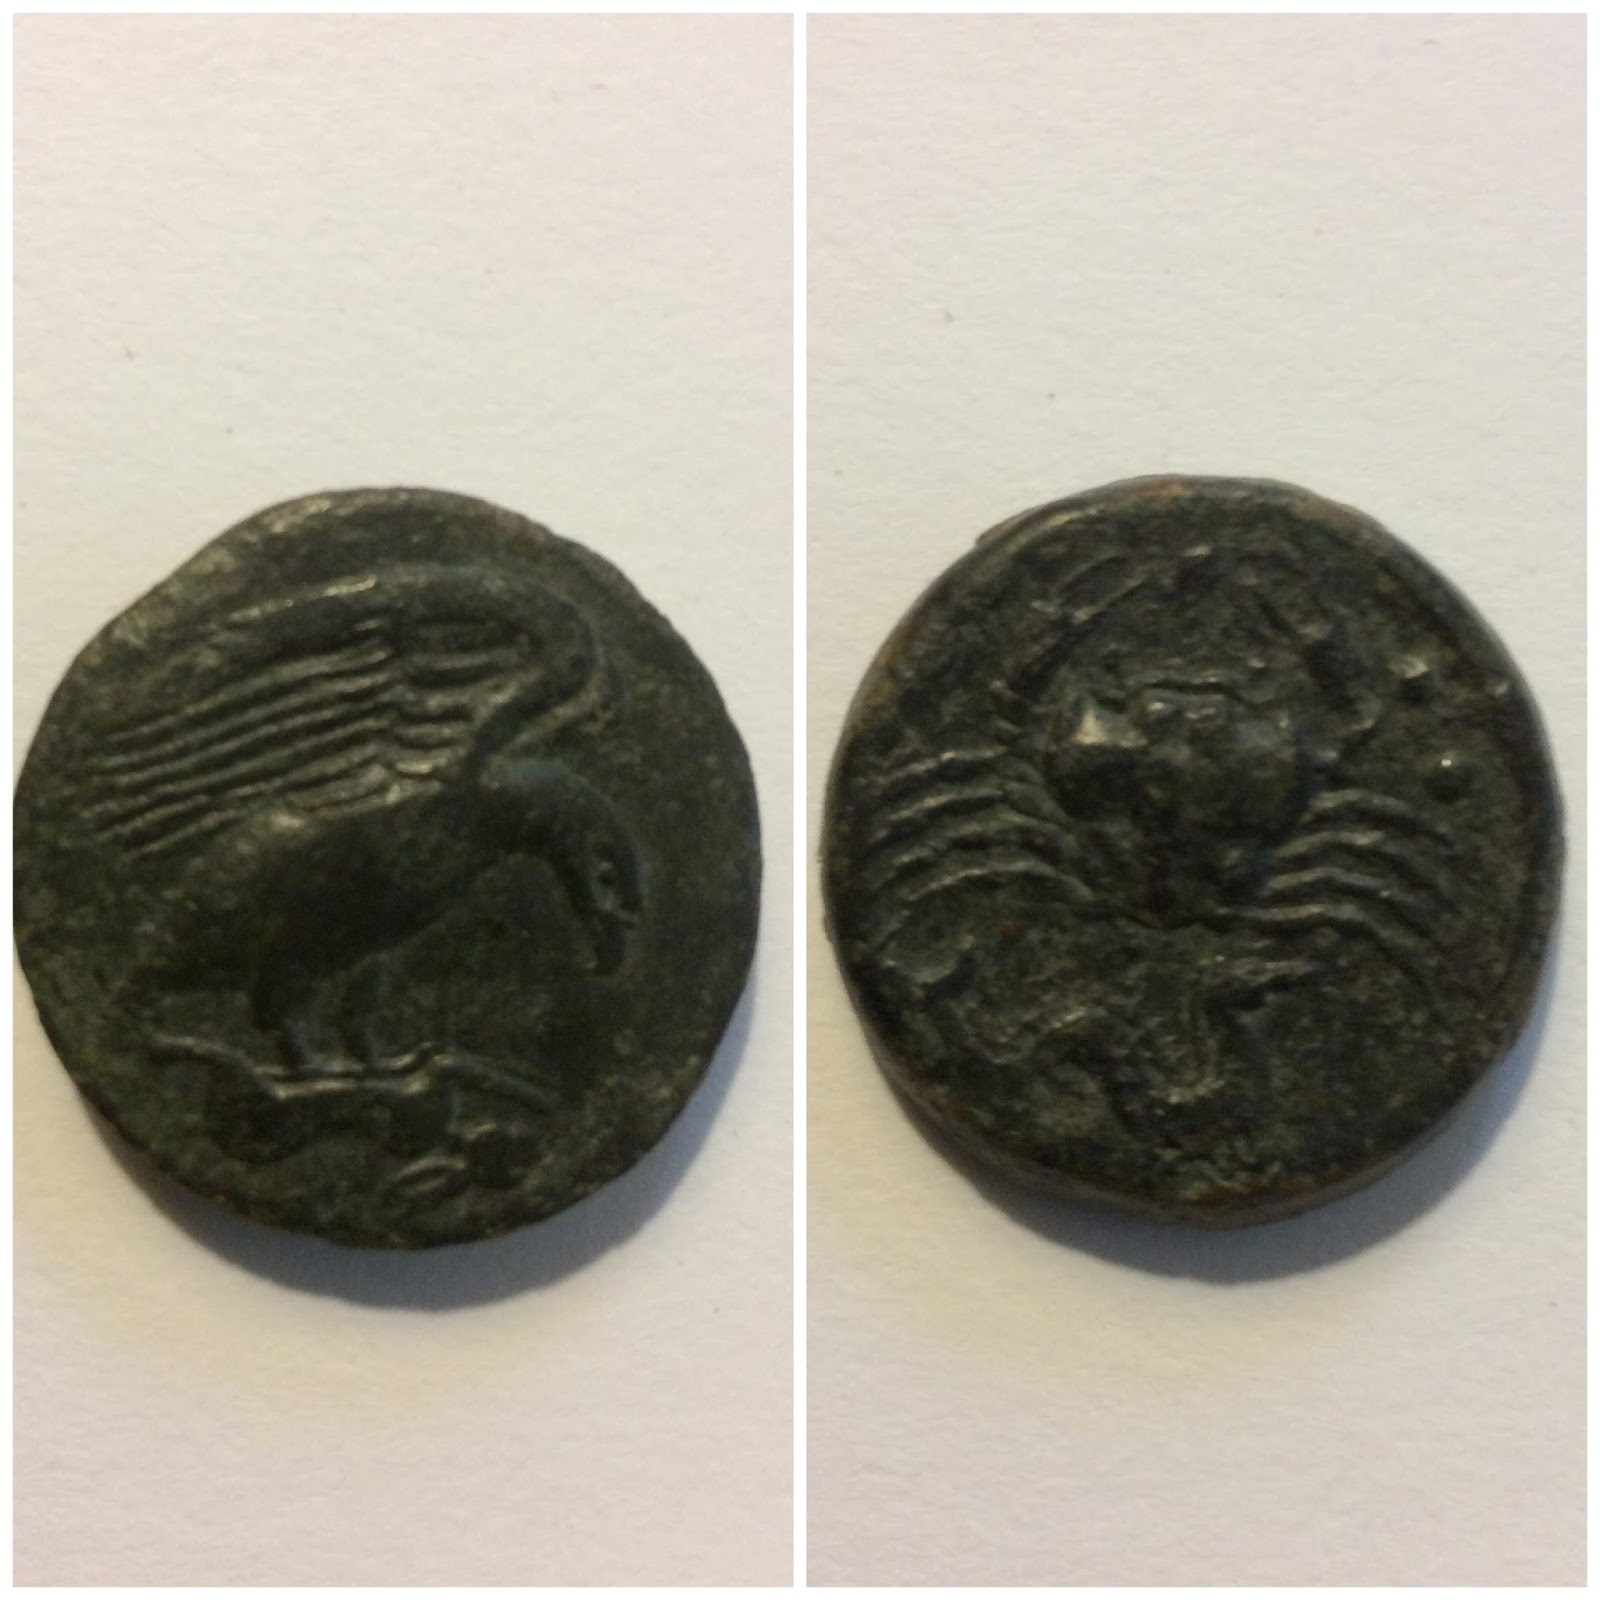 authenticity guaranteed posted by orbis coins and maps